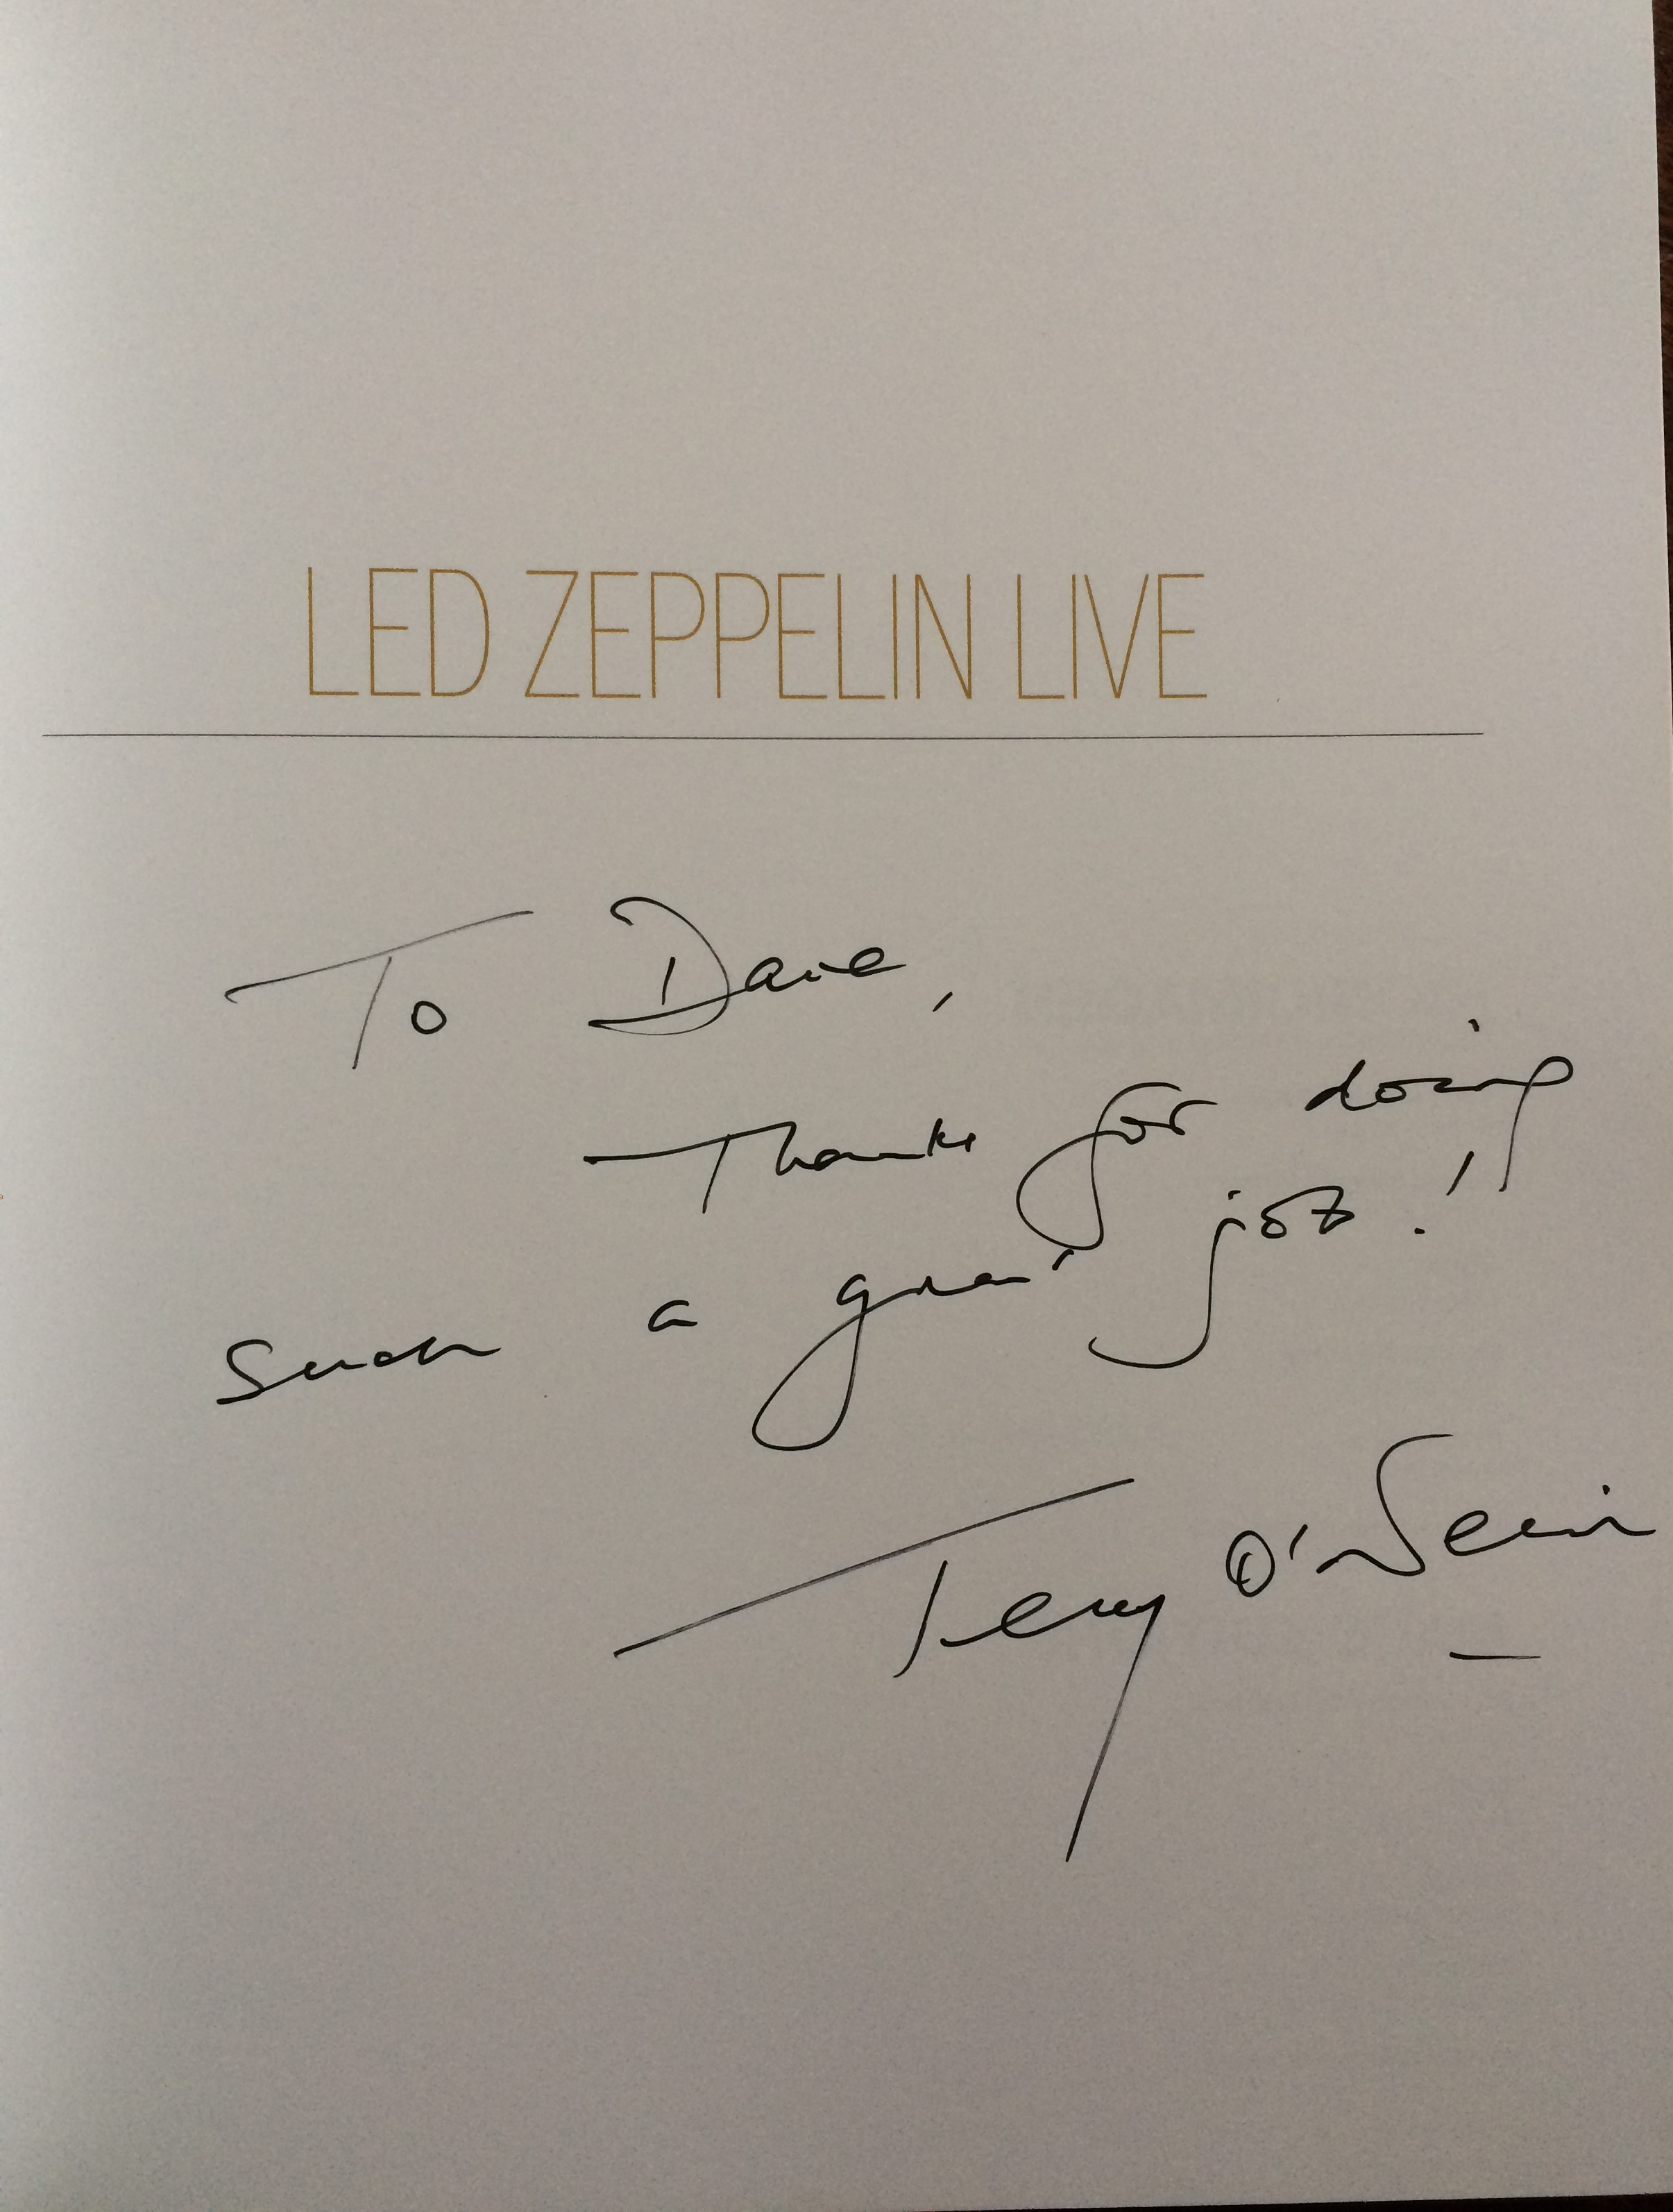 Tight But Loose Blog Archive Terry O Neill 1938 2019 Rip Lz News Electric Magic Empire Pool Led Zep Iv 48 Years Gone Olympia 2013 Vinyl Countdown Book Dave Lewis Diary Blog Update Tight But